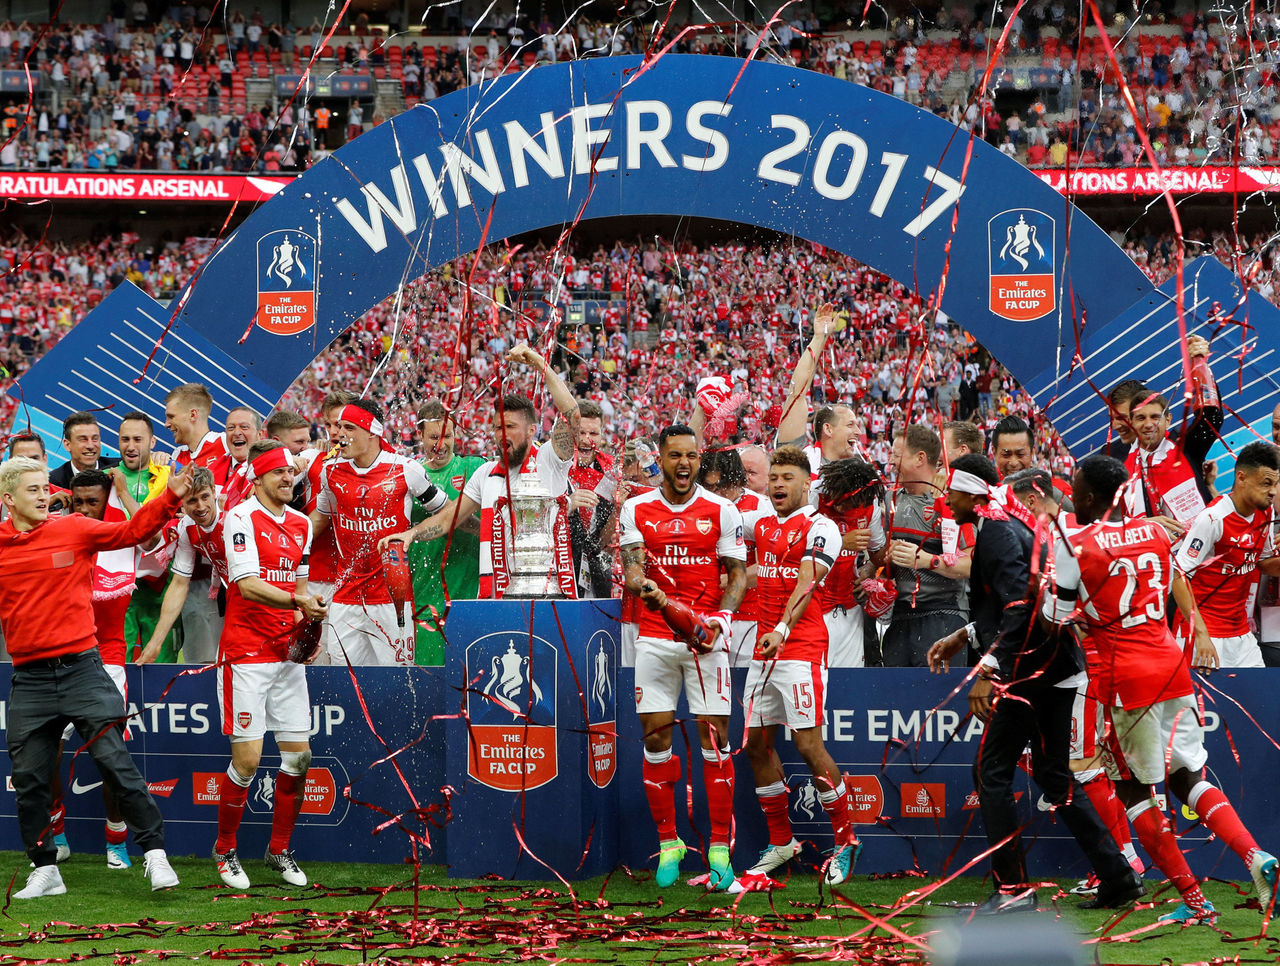 Cropped 2017 05 27t185407z 1640884571 rc1c2fddc610 rtrmadp 3 soccer england ars che final